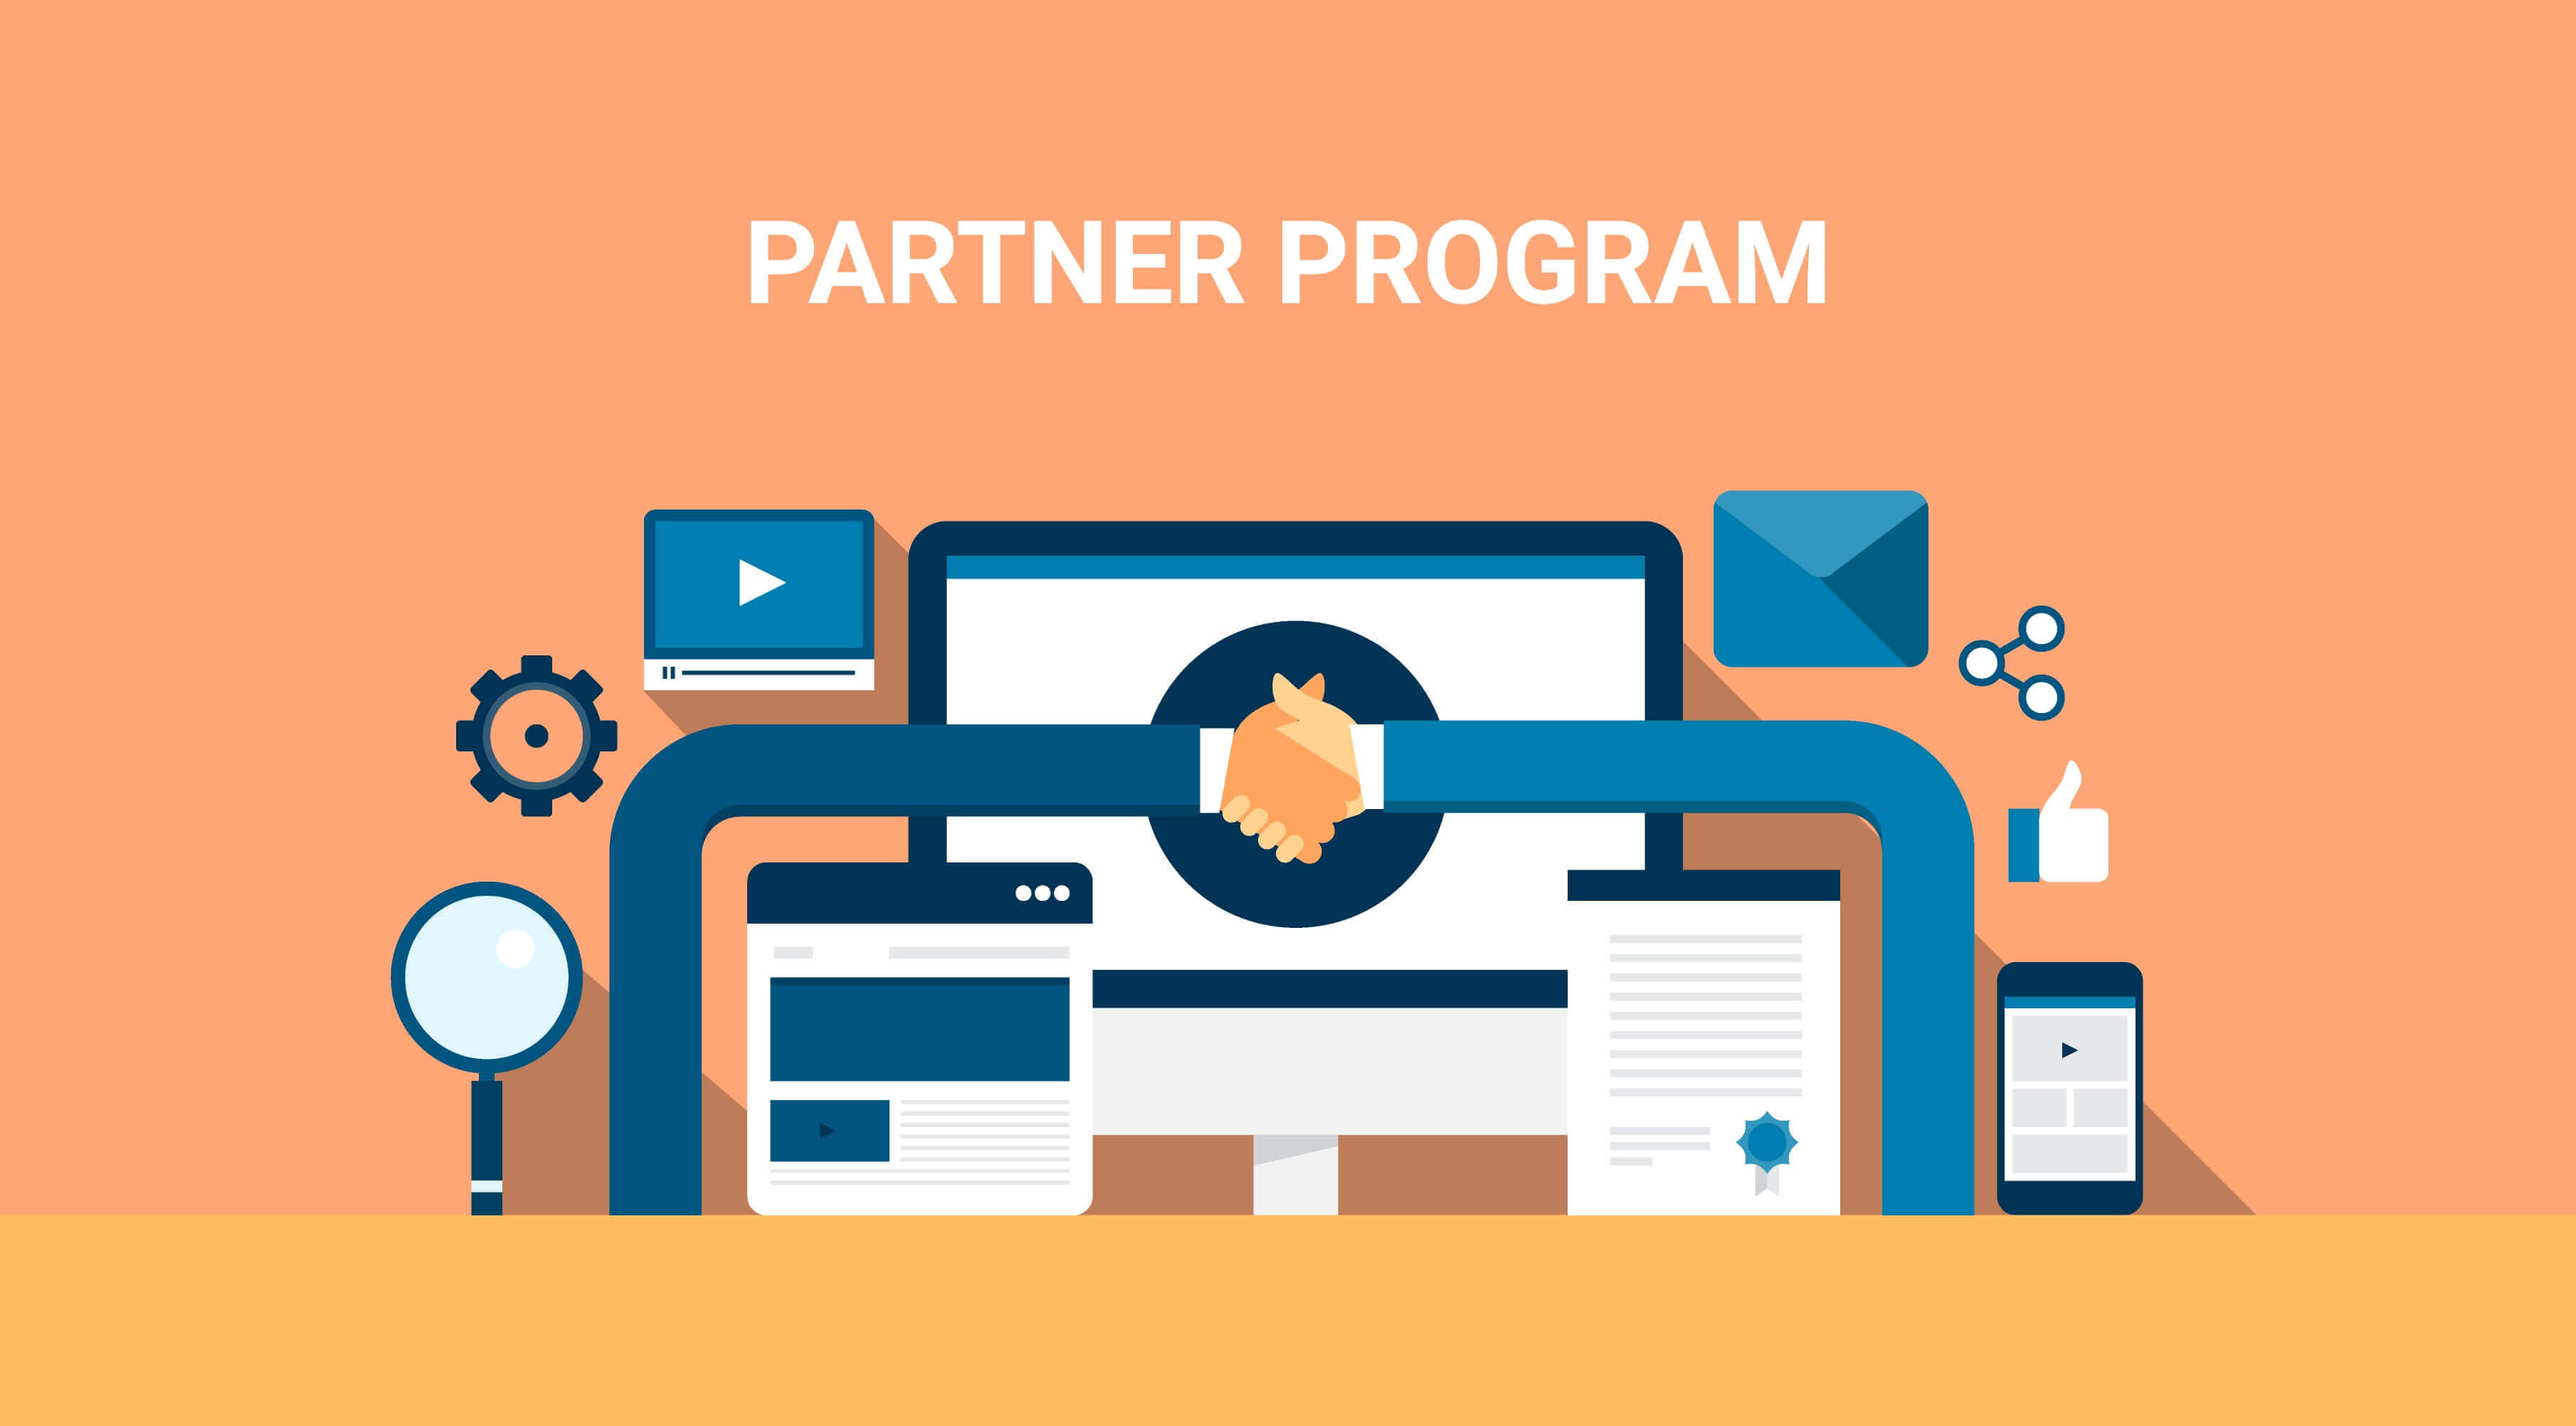 Setup a partner program for your SAAS business to generate more revenue